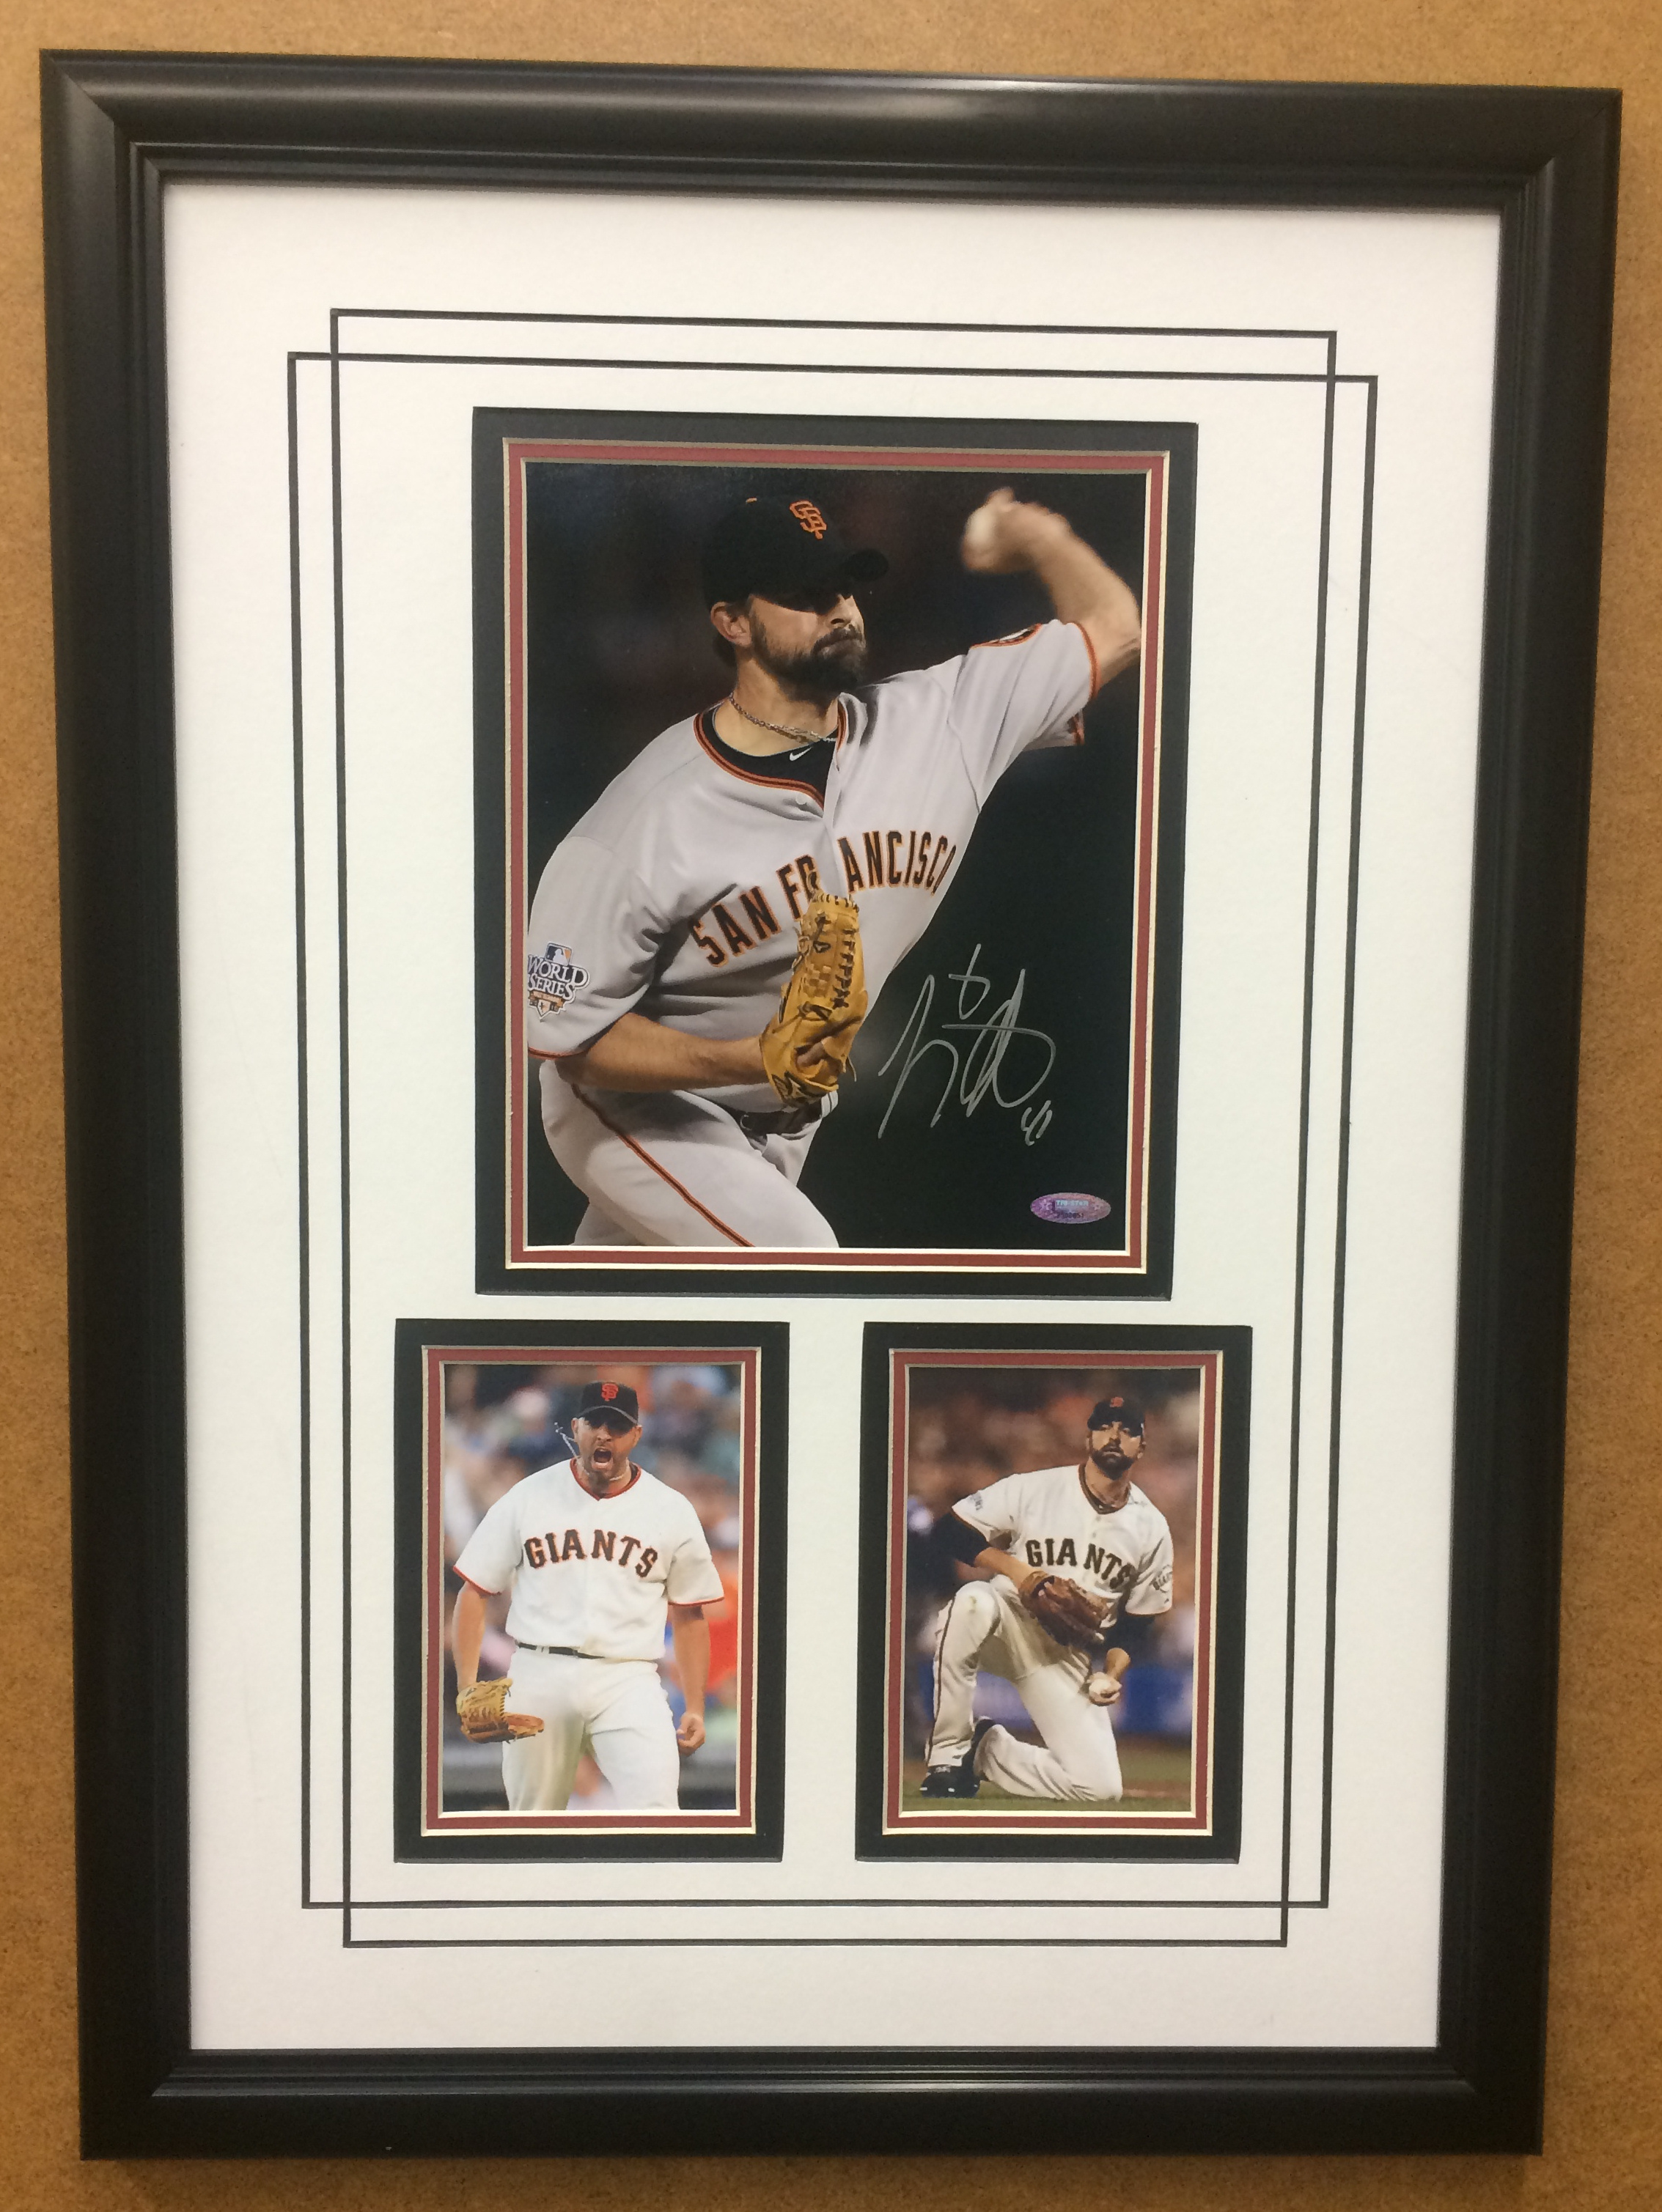 Jeremy Affeldt S.F. Giants Hand-Signed 8x10 Commemorative